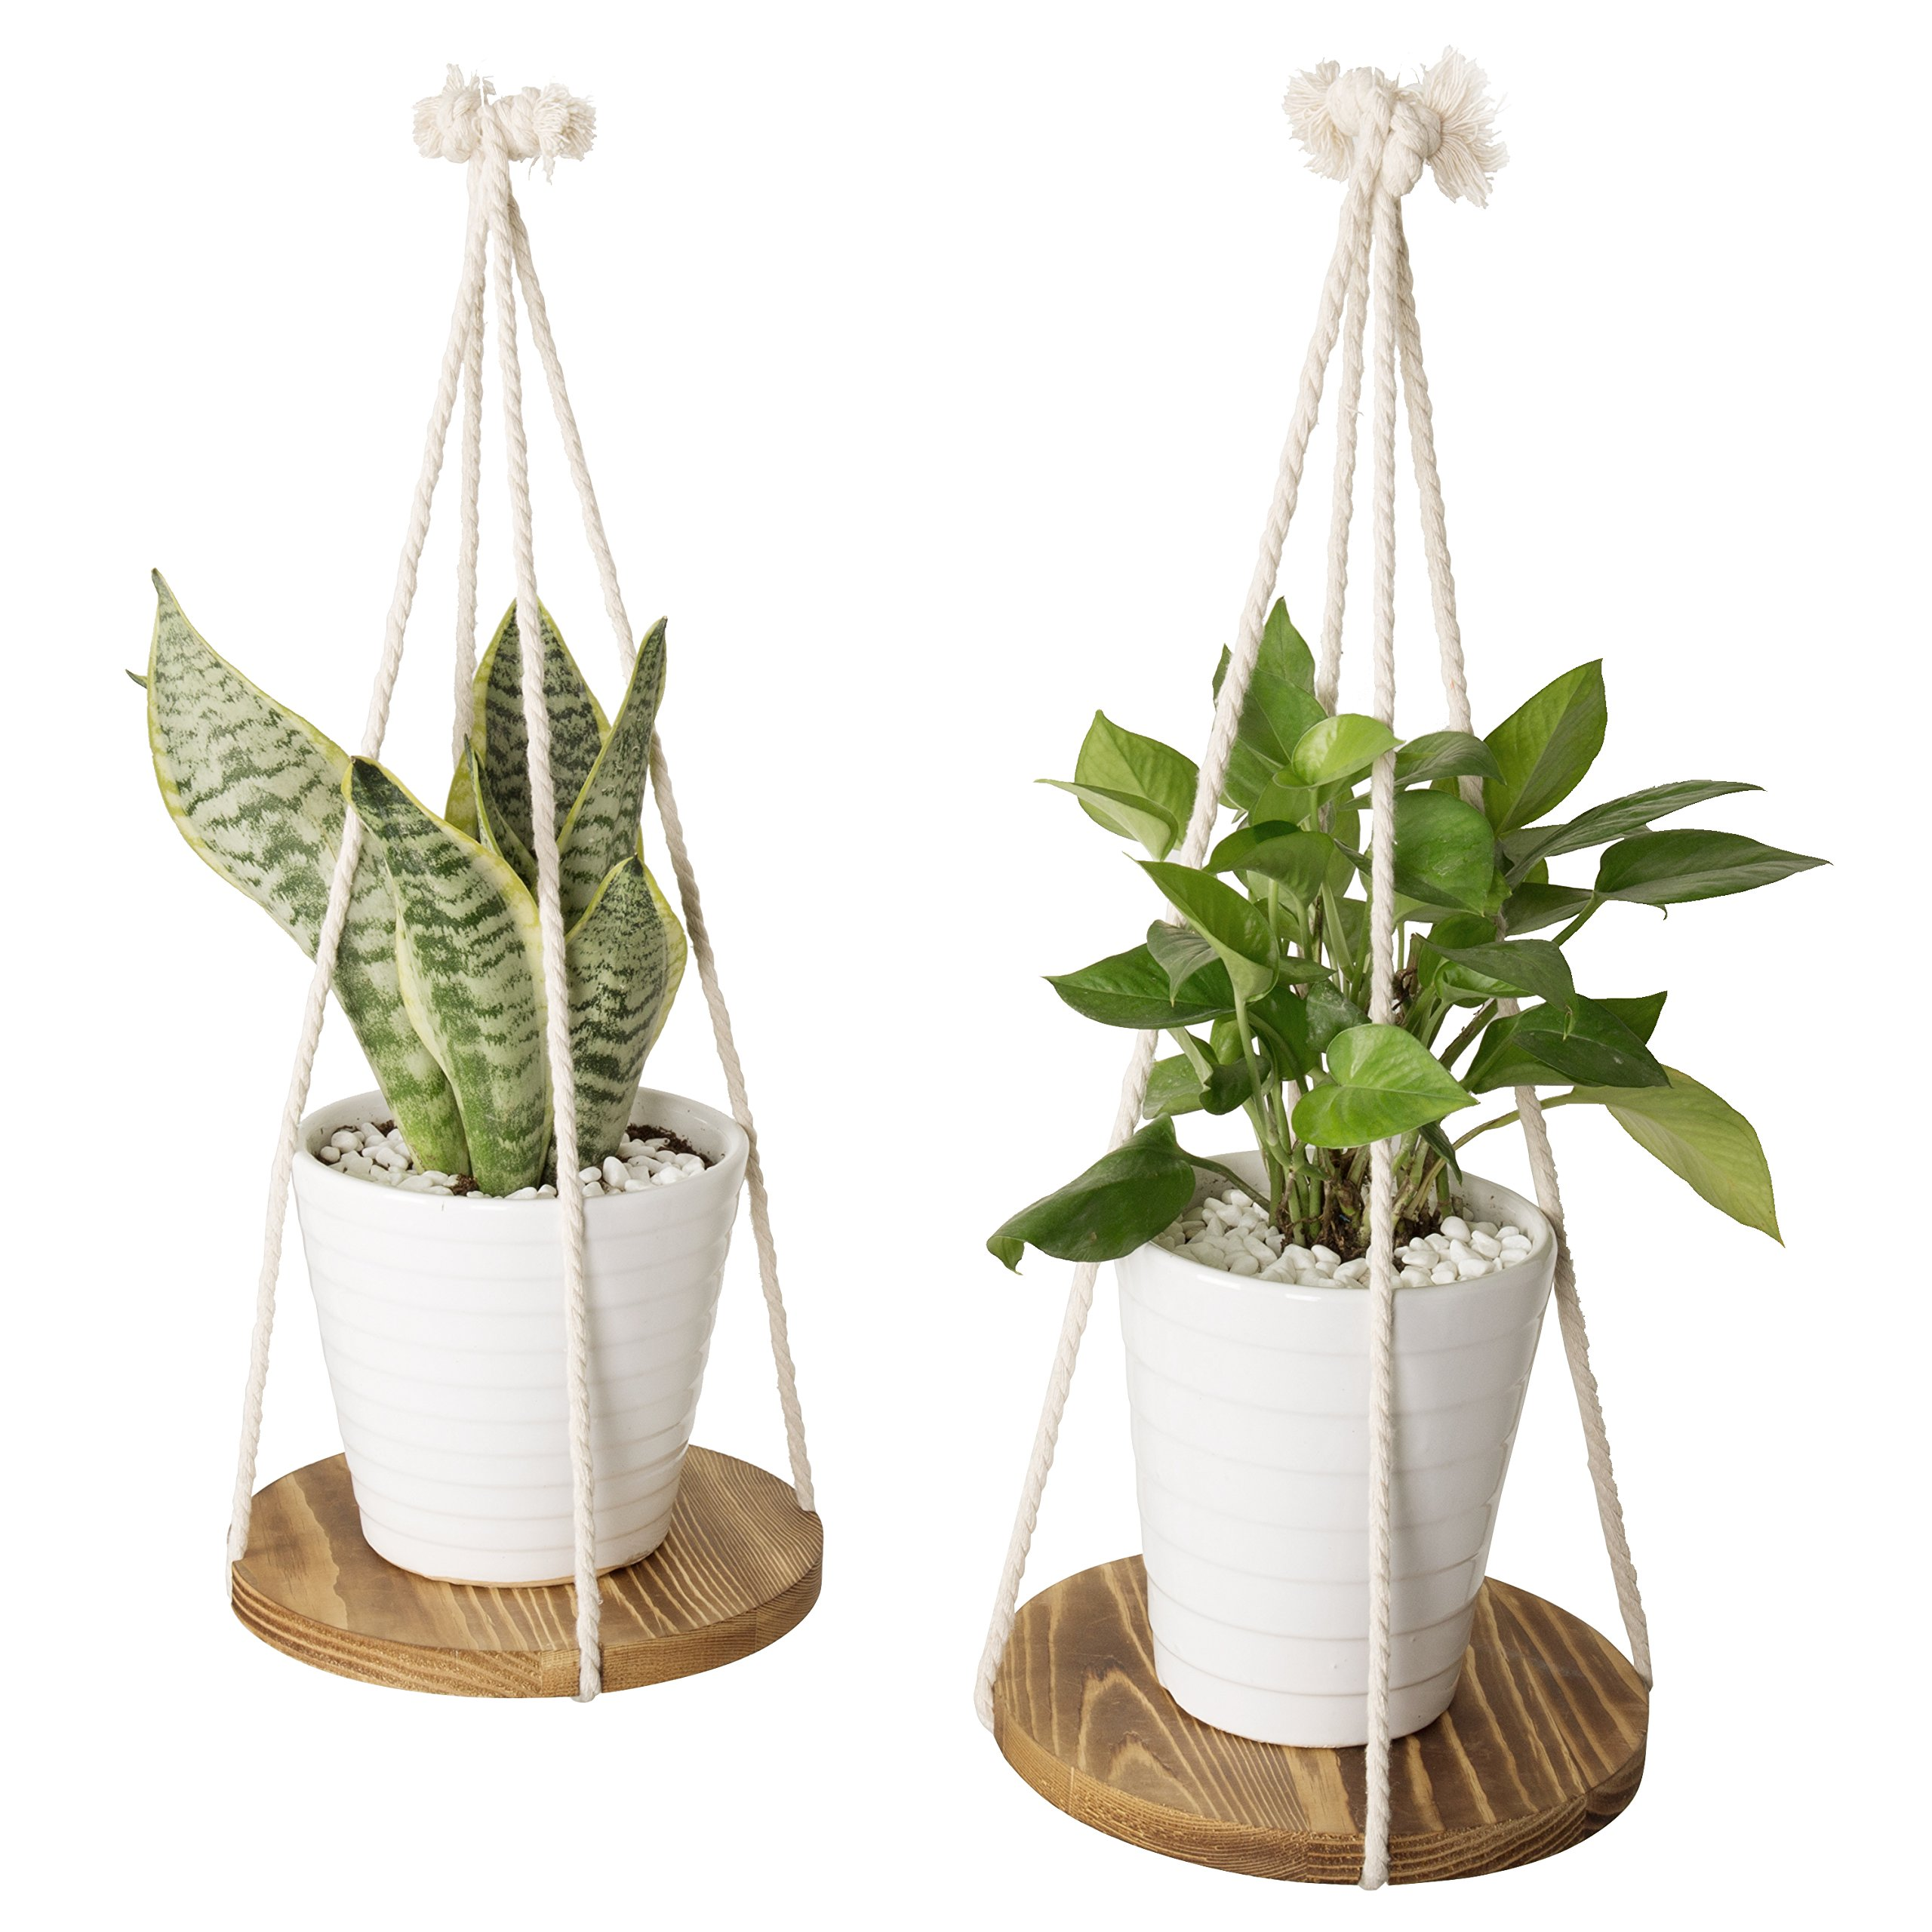 9-Inch Round Burnt Wood Hanging Plant Stand with Rope Hangers, Set of 2 by MyGift